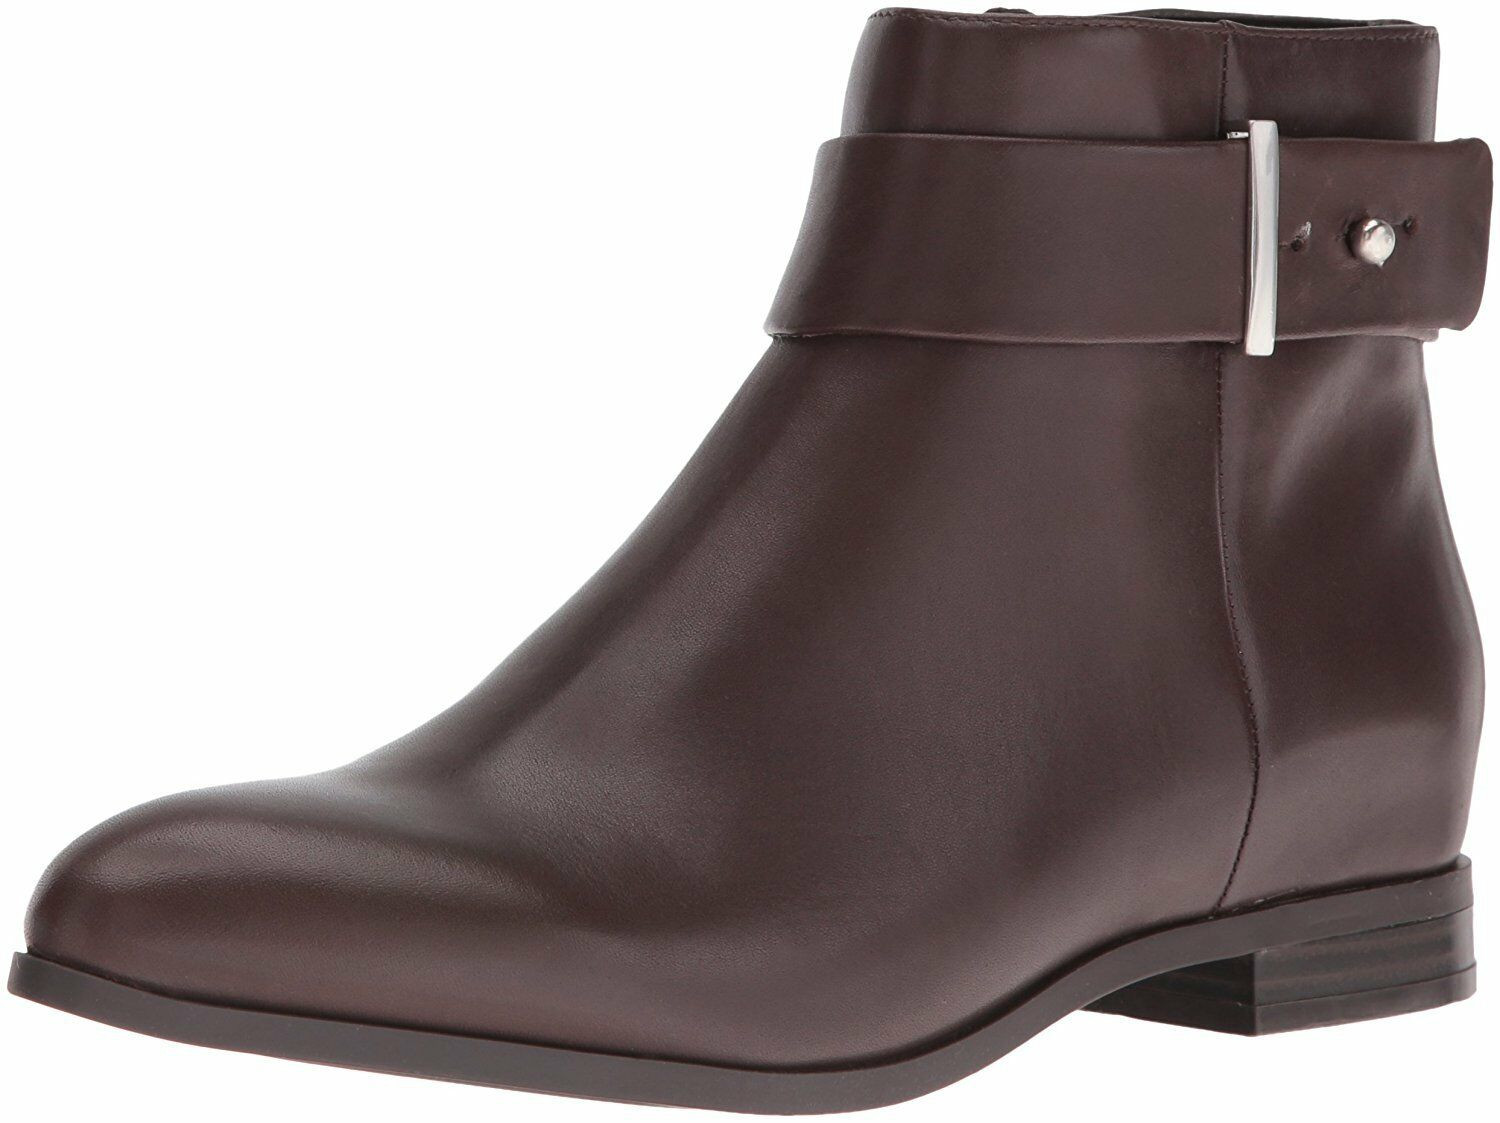 Nine West Womens Objective Leather Boot- Pick SZ/Color.